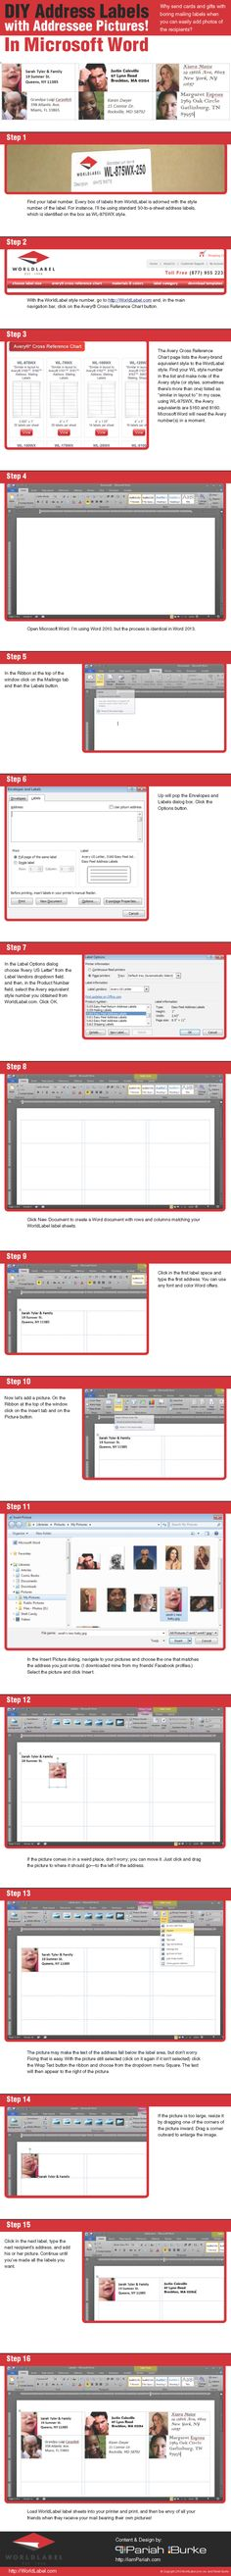 How to make address labels in Microsoft Word using label templates by @Pariah Burke